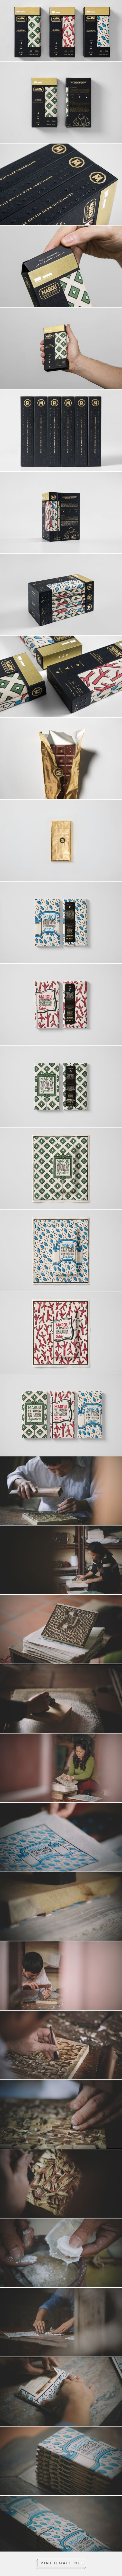 Marou Chocolate for National Gallery Singapore — The Dieline - Branding & Packaging - created via https://pinthemall.net